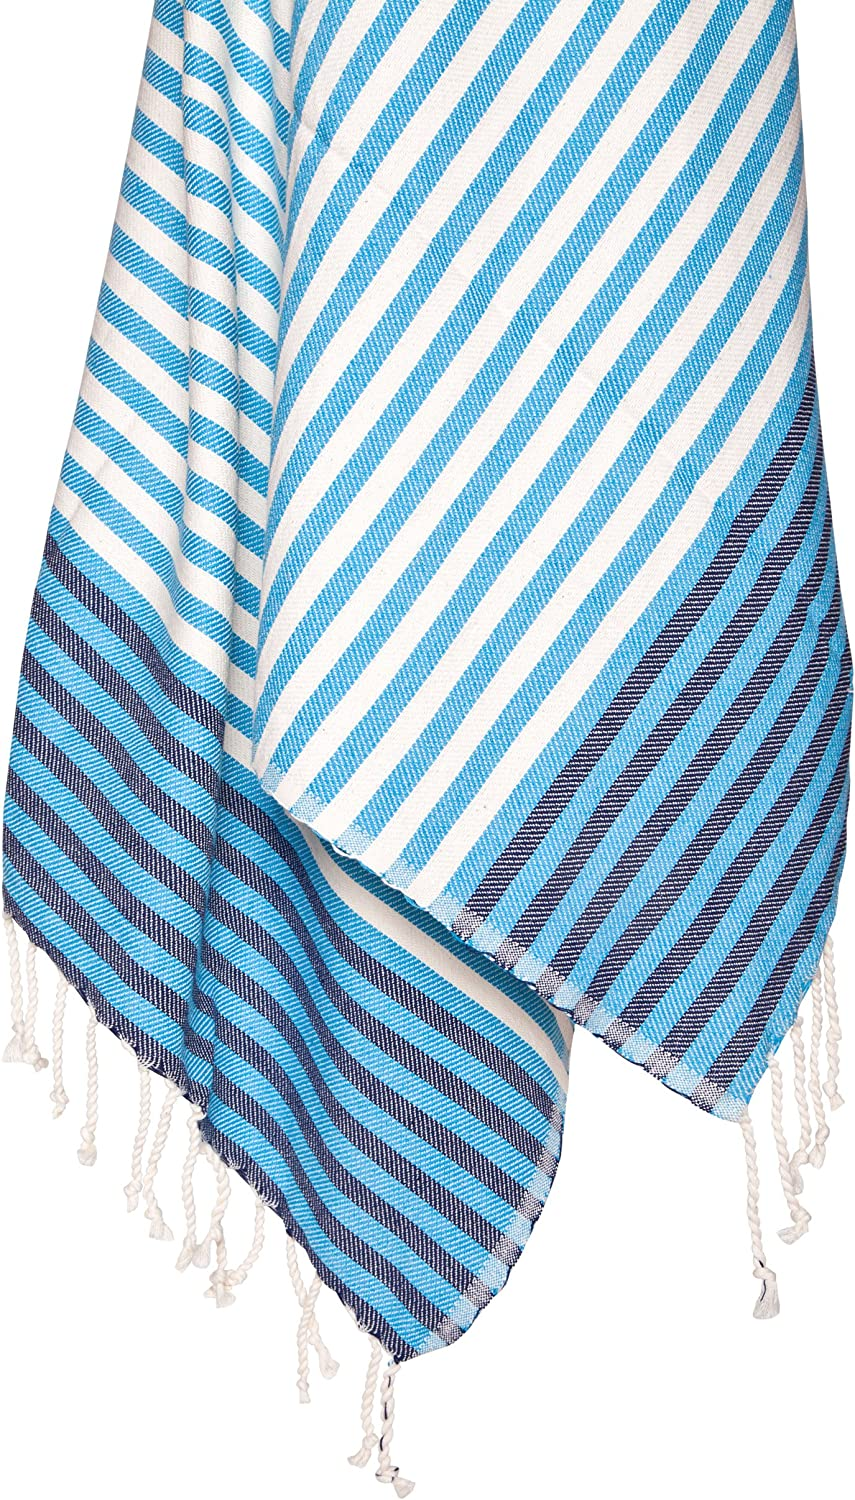 Amazon Com Buldano 100 Cotton Turkish Towel Beach 33 X 70 Inches Turquoise Blue Striped Hand Woven Home Kitchen